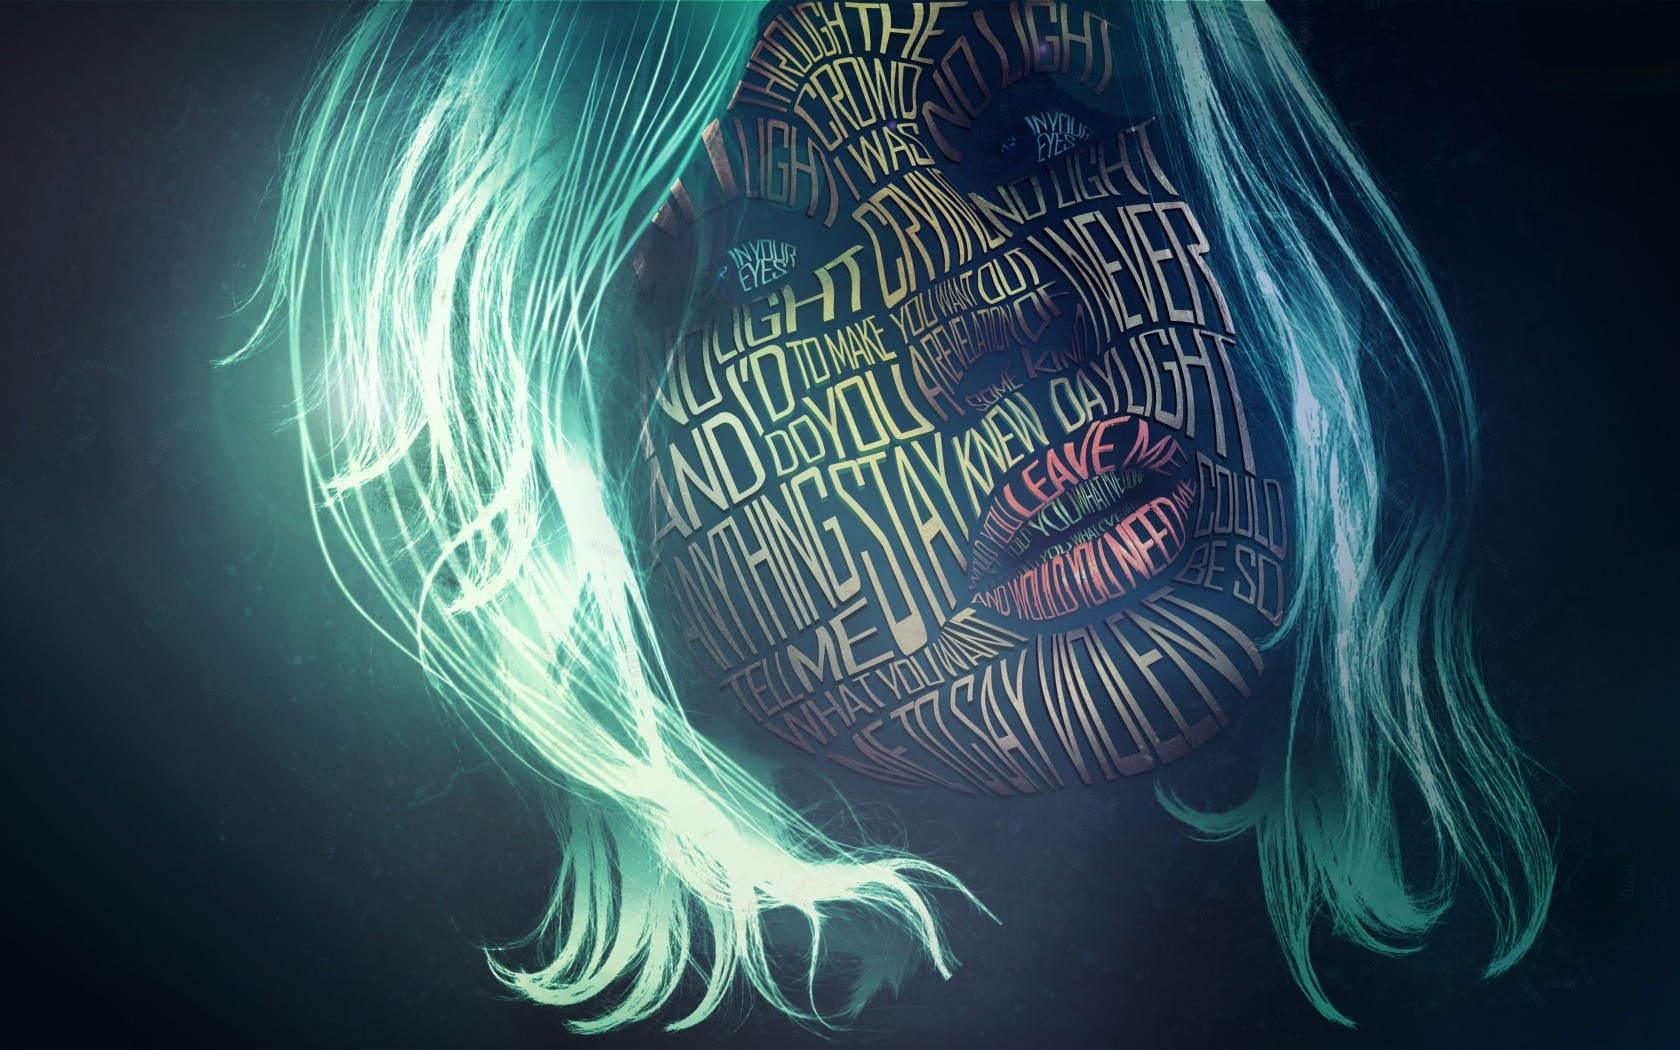 Woman Face Typography Wallpaper for Desktop 1680x1050